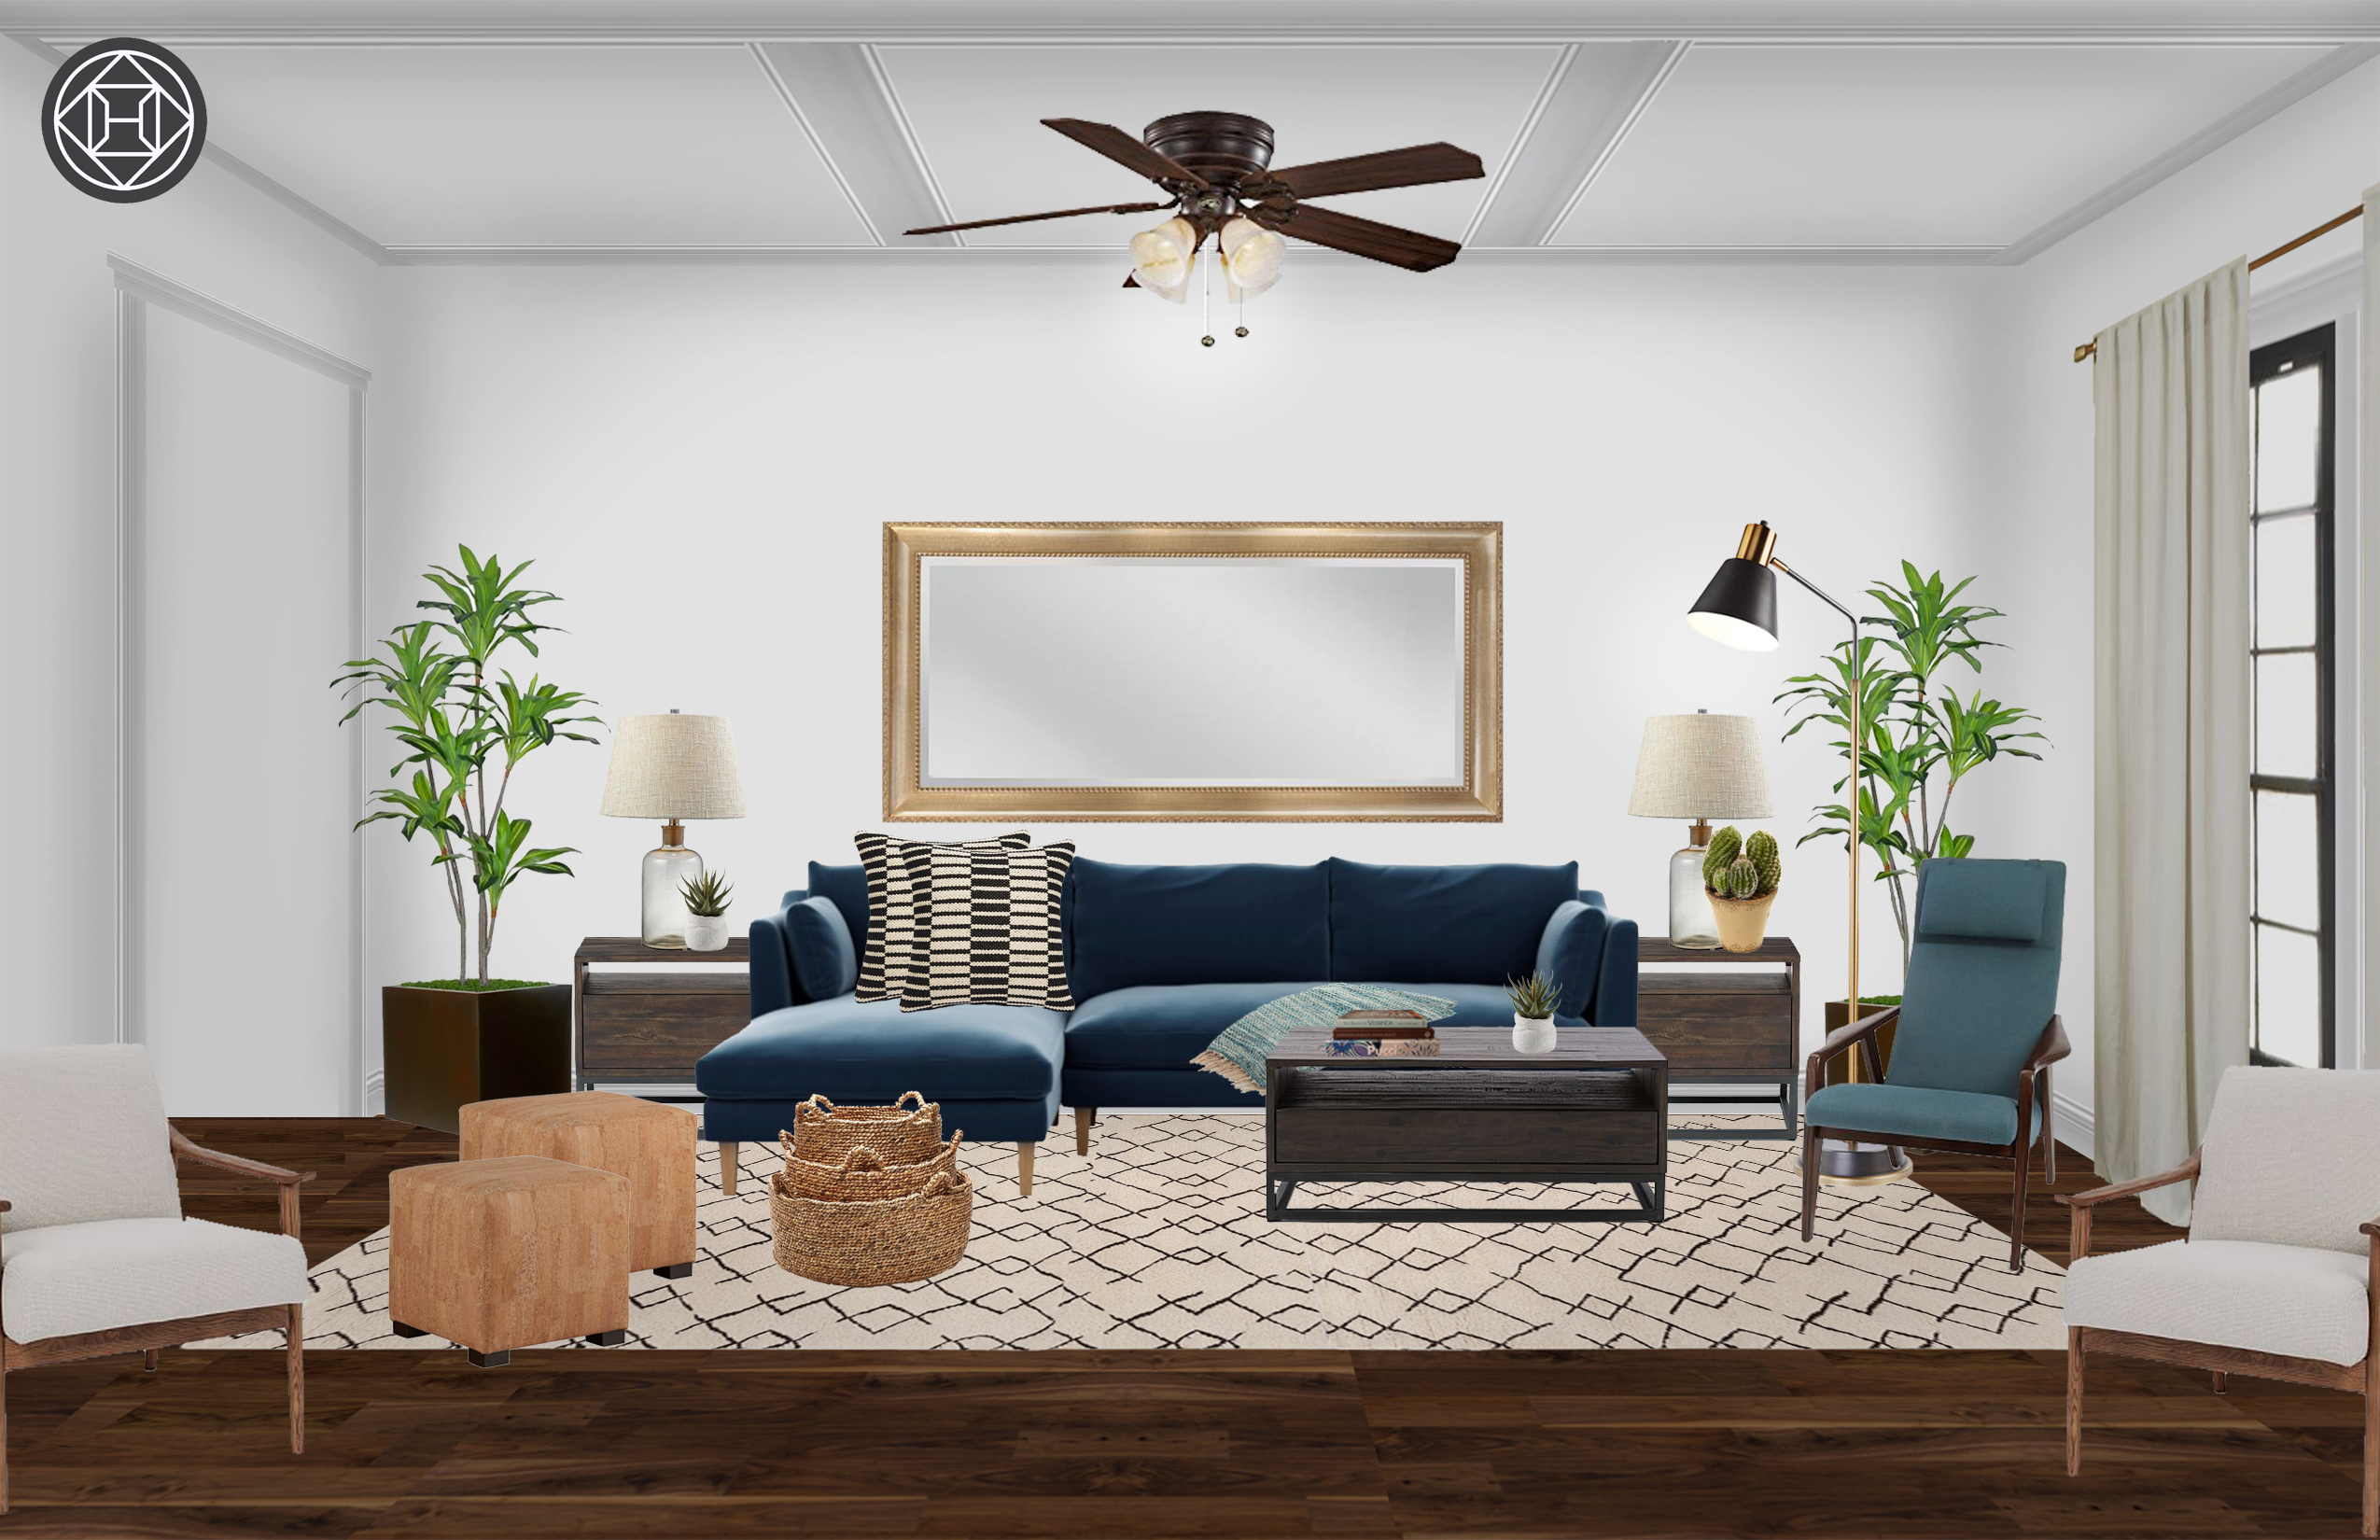 Industrial, Midcentury Modern Living Room Design by Havenly ...